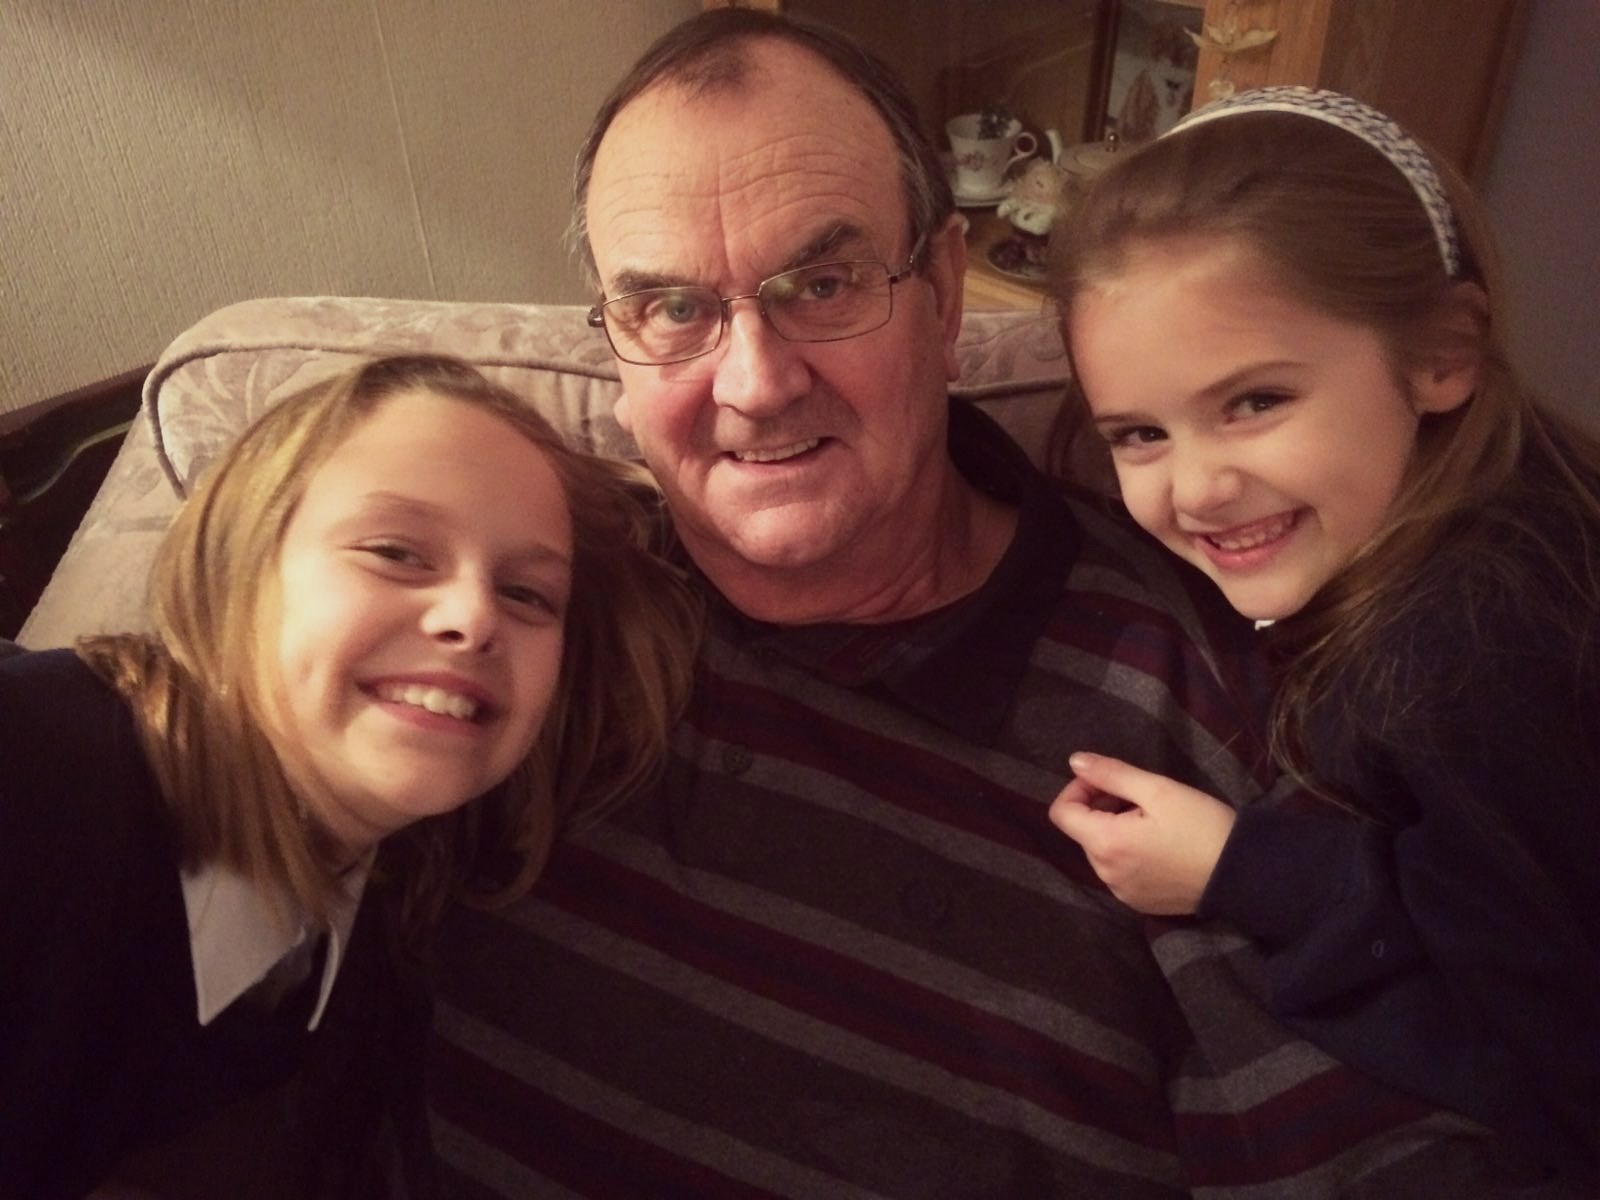 Roger and his granddaughters, Lillie and Summer